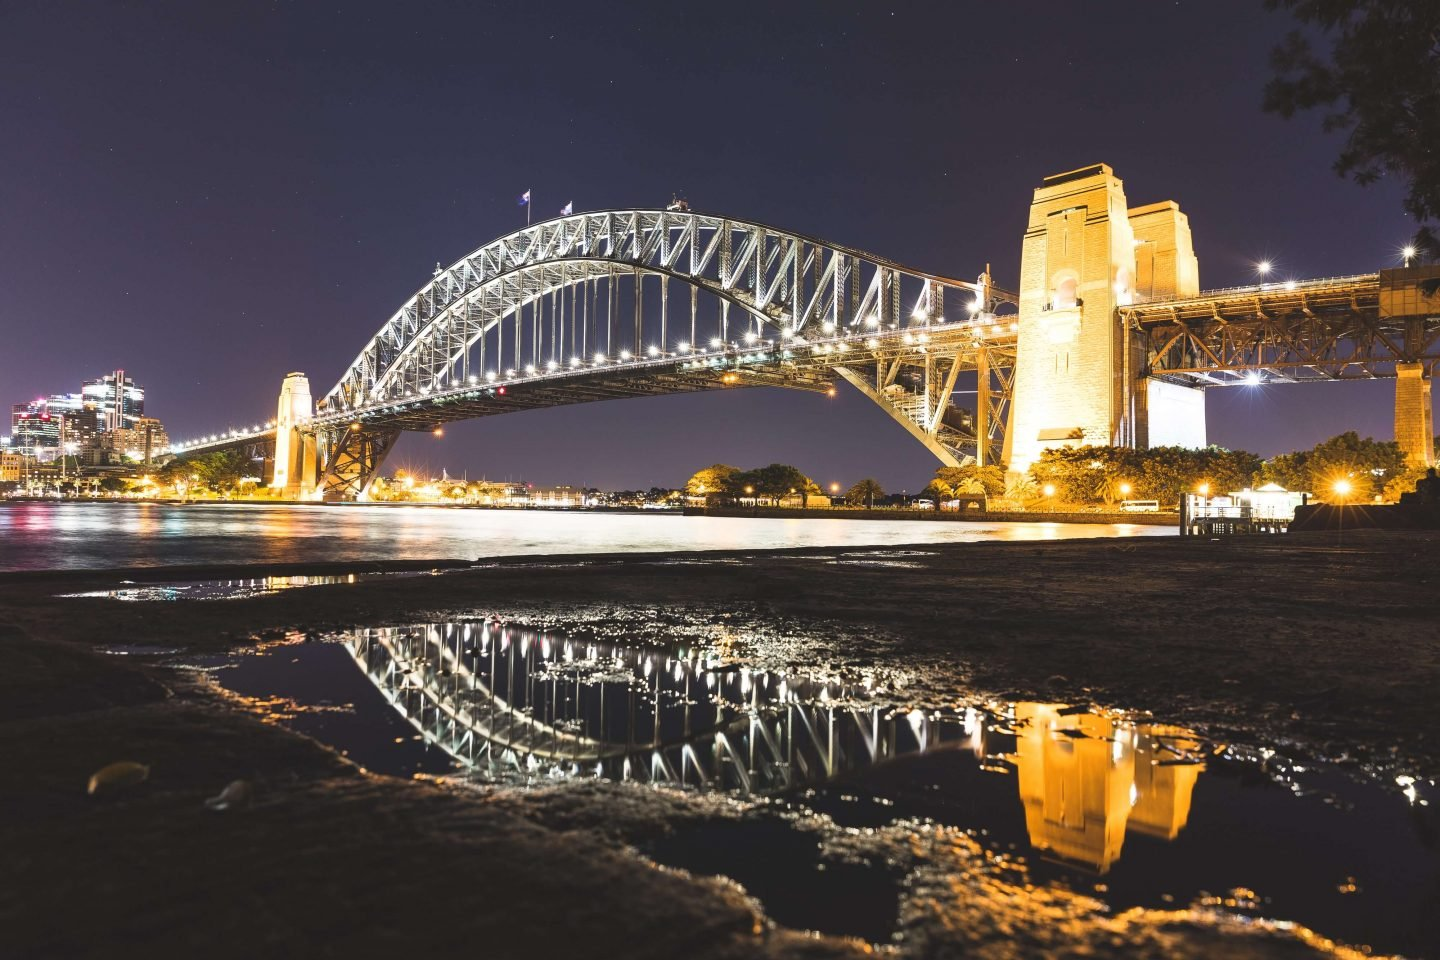 famous landmarks from around the world - Sydney Harbour Bridge